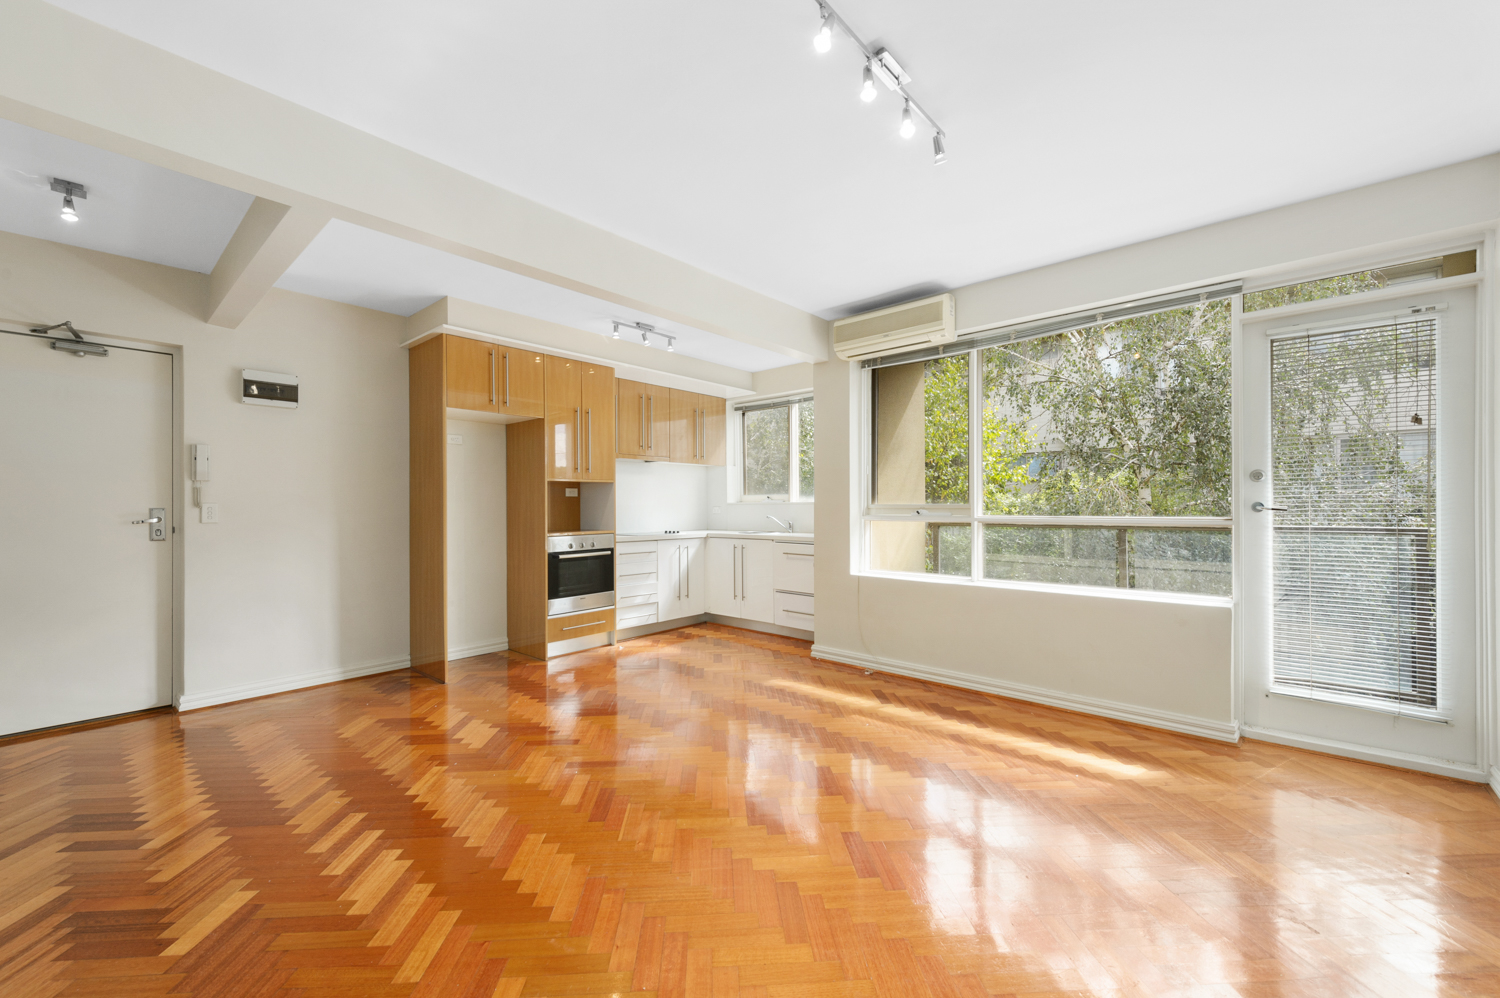 12-11-kooyong-road-armadale-student-accommodation-Melbourne-Living-Area-1-Unilodgers